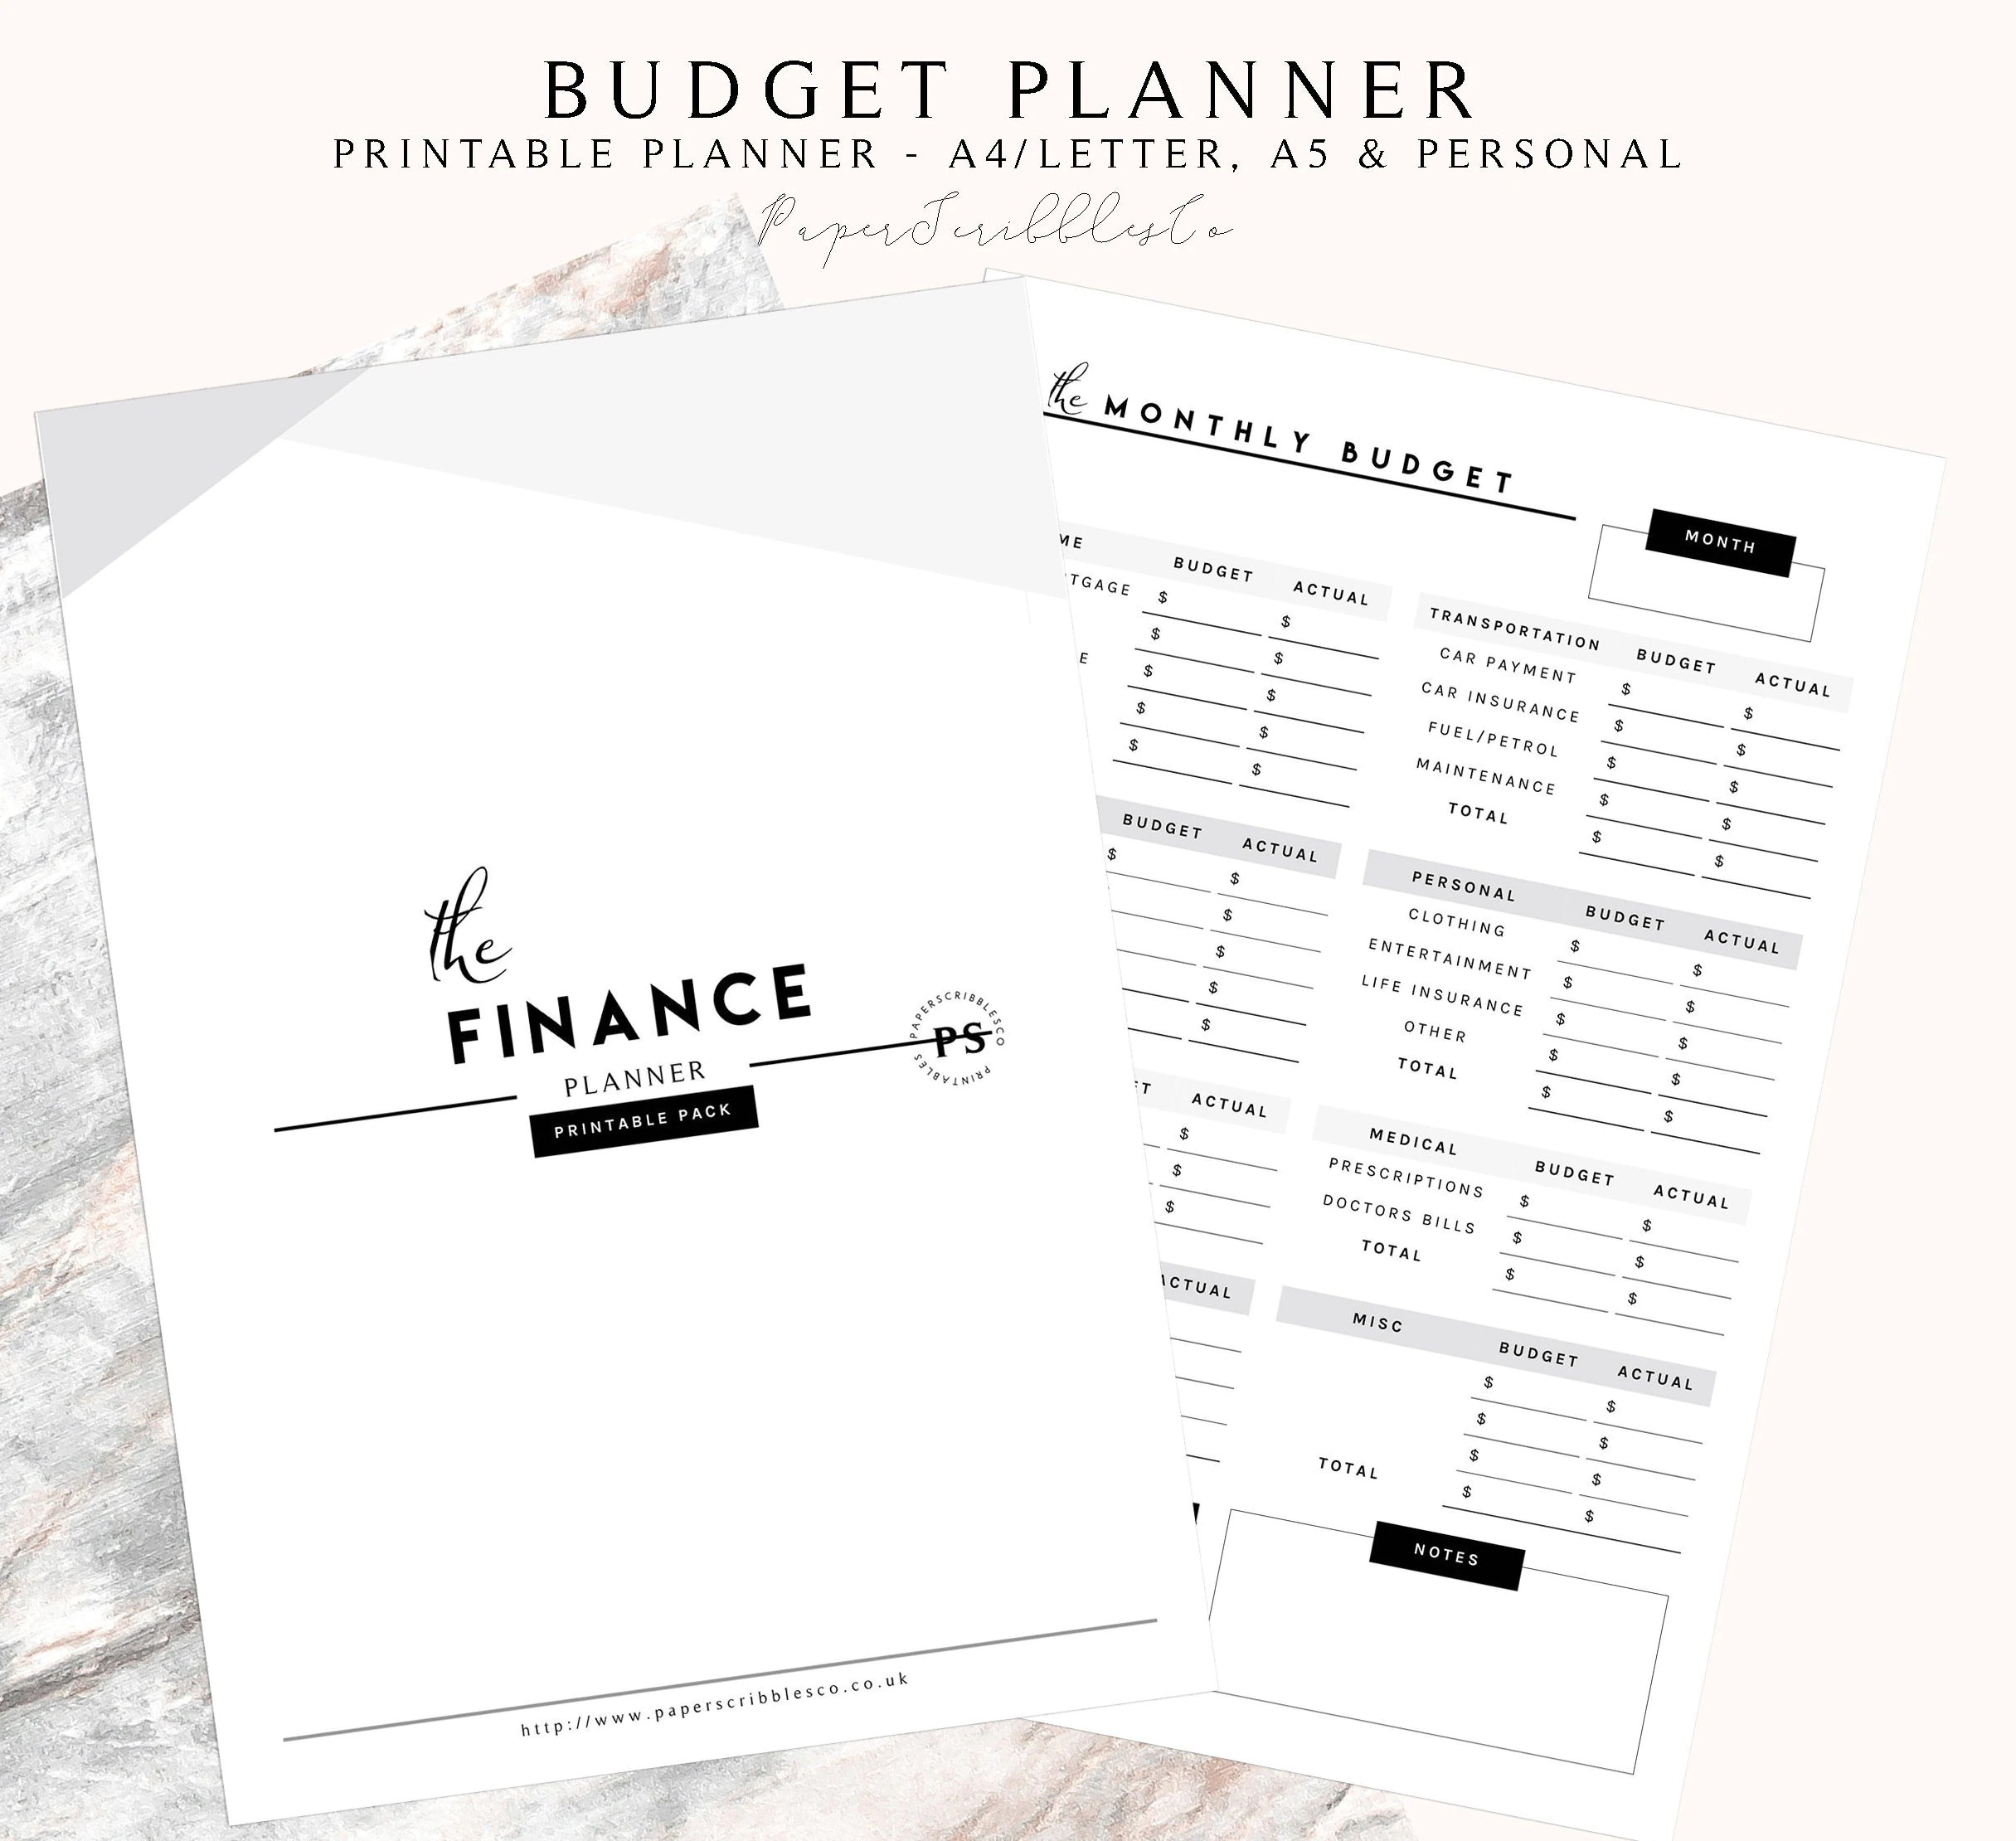 Printable Finance Planner Budget Planner Financial Planner